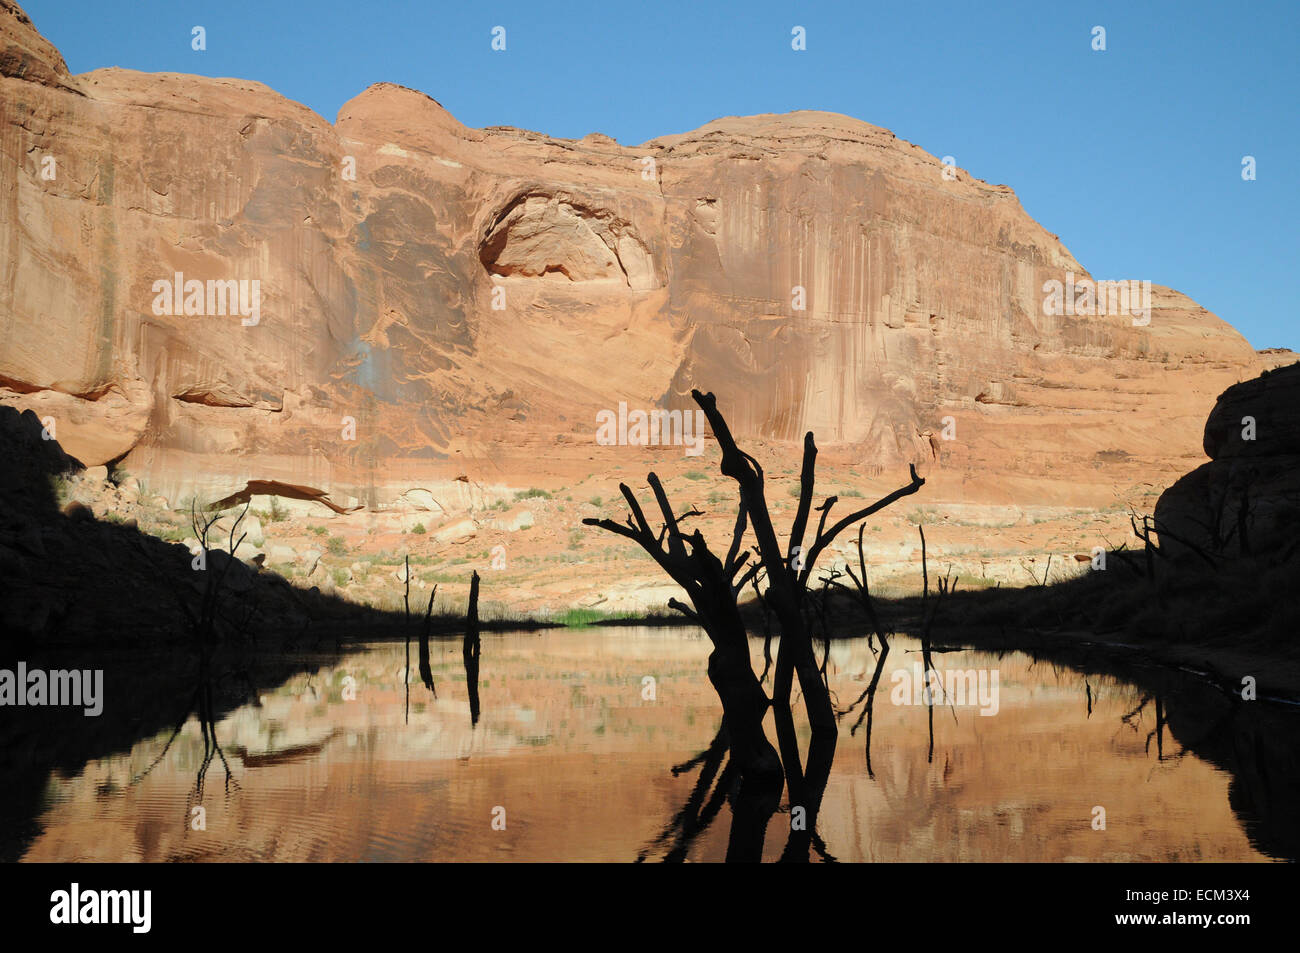 A low afternoon sun casts a shadow over the far end of Forgotten Canyon, Lake Powell, silhouetting previously submerged - Stock Image